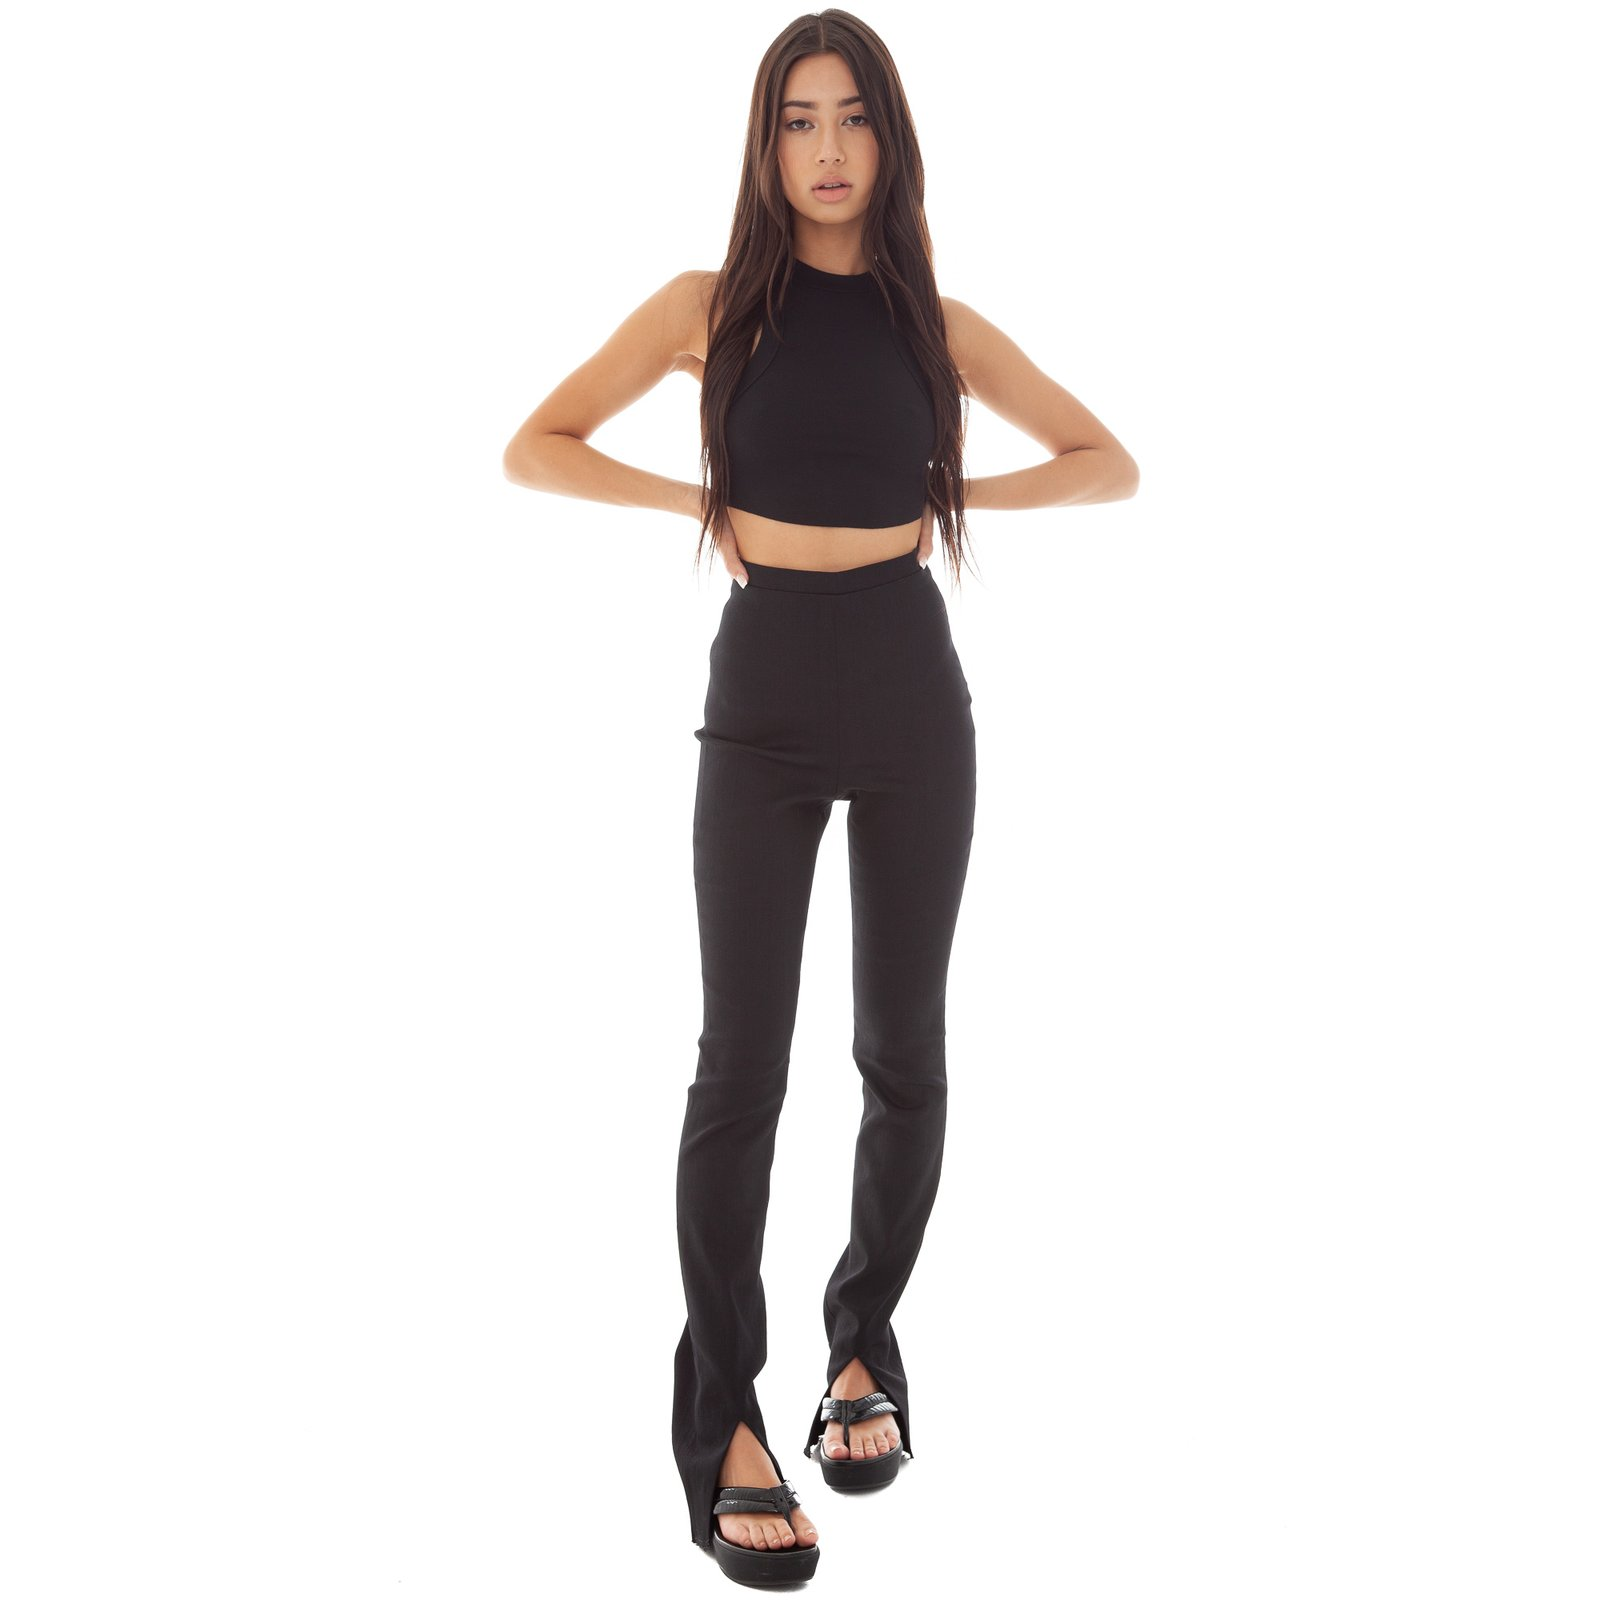 Kylu Pant by Are You Am I, available on areyouami.com Kendall Jenner Pants SIMILAR PRODUCT